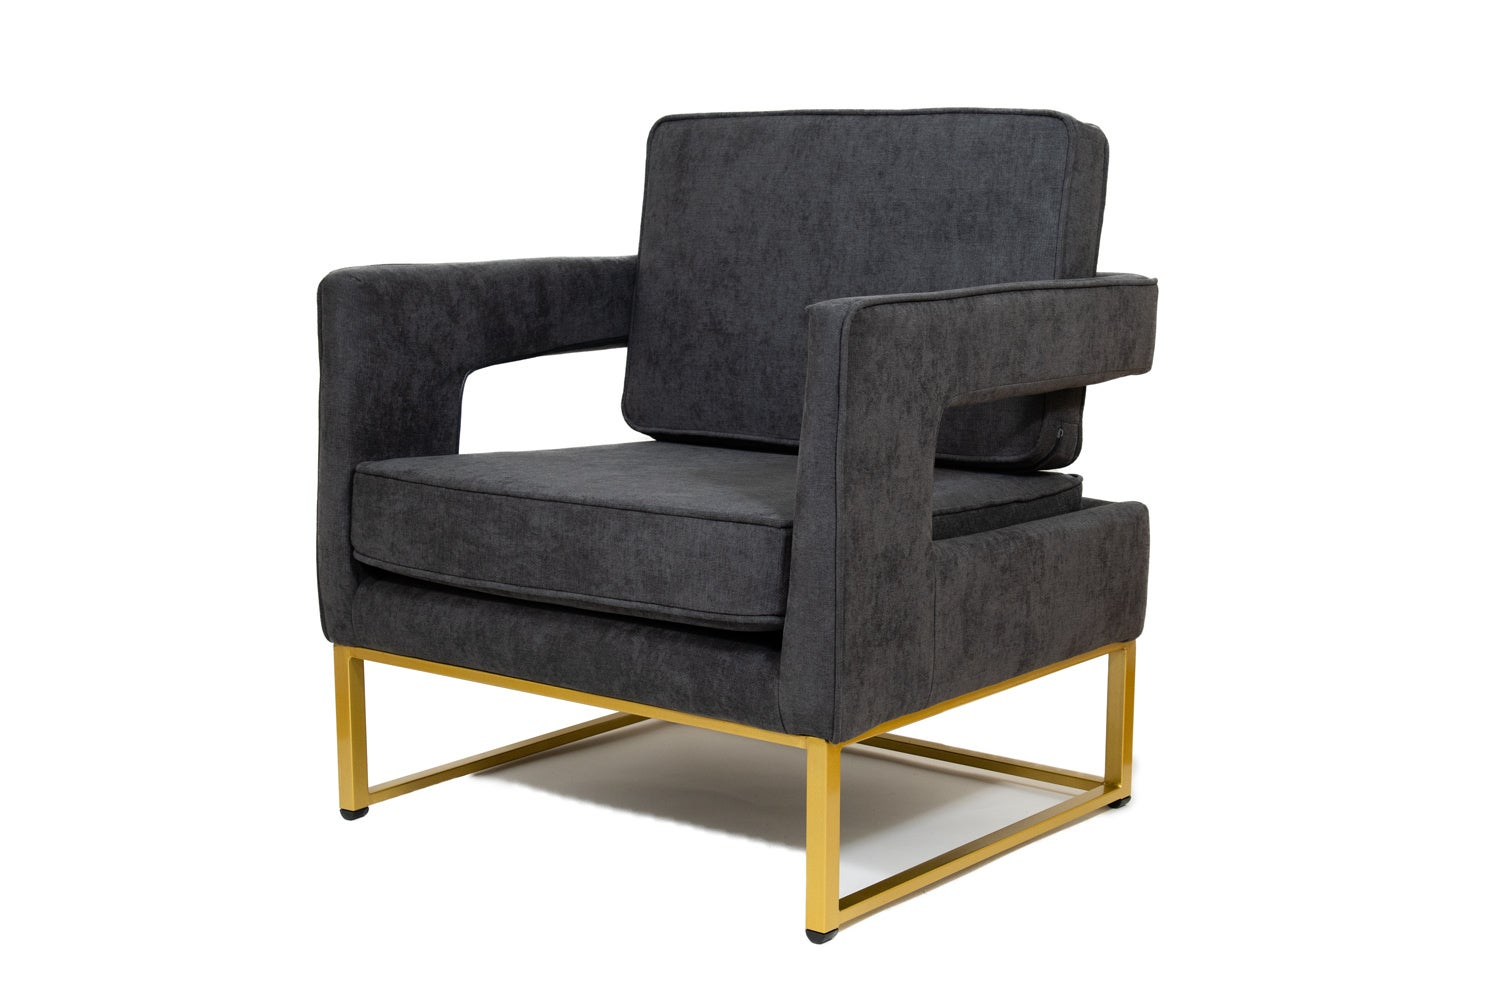 Fabulous Grey Linen Designer Fabric Carlo Accent Chair W Gold Base Rrp 1044 99 Ibusinesslaw Wood Chair Design Ideas Ibusinesslaworg